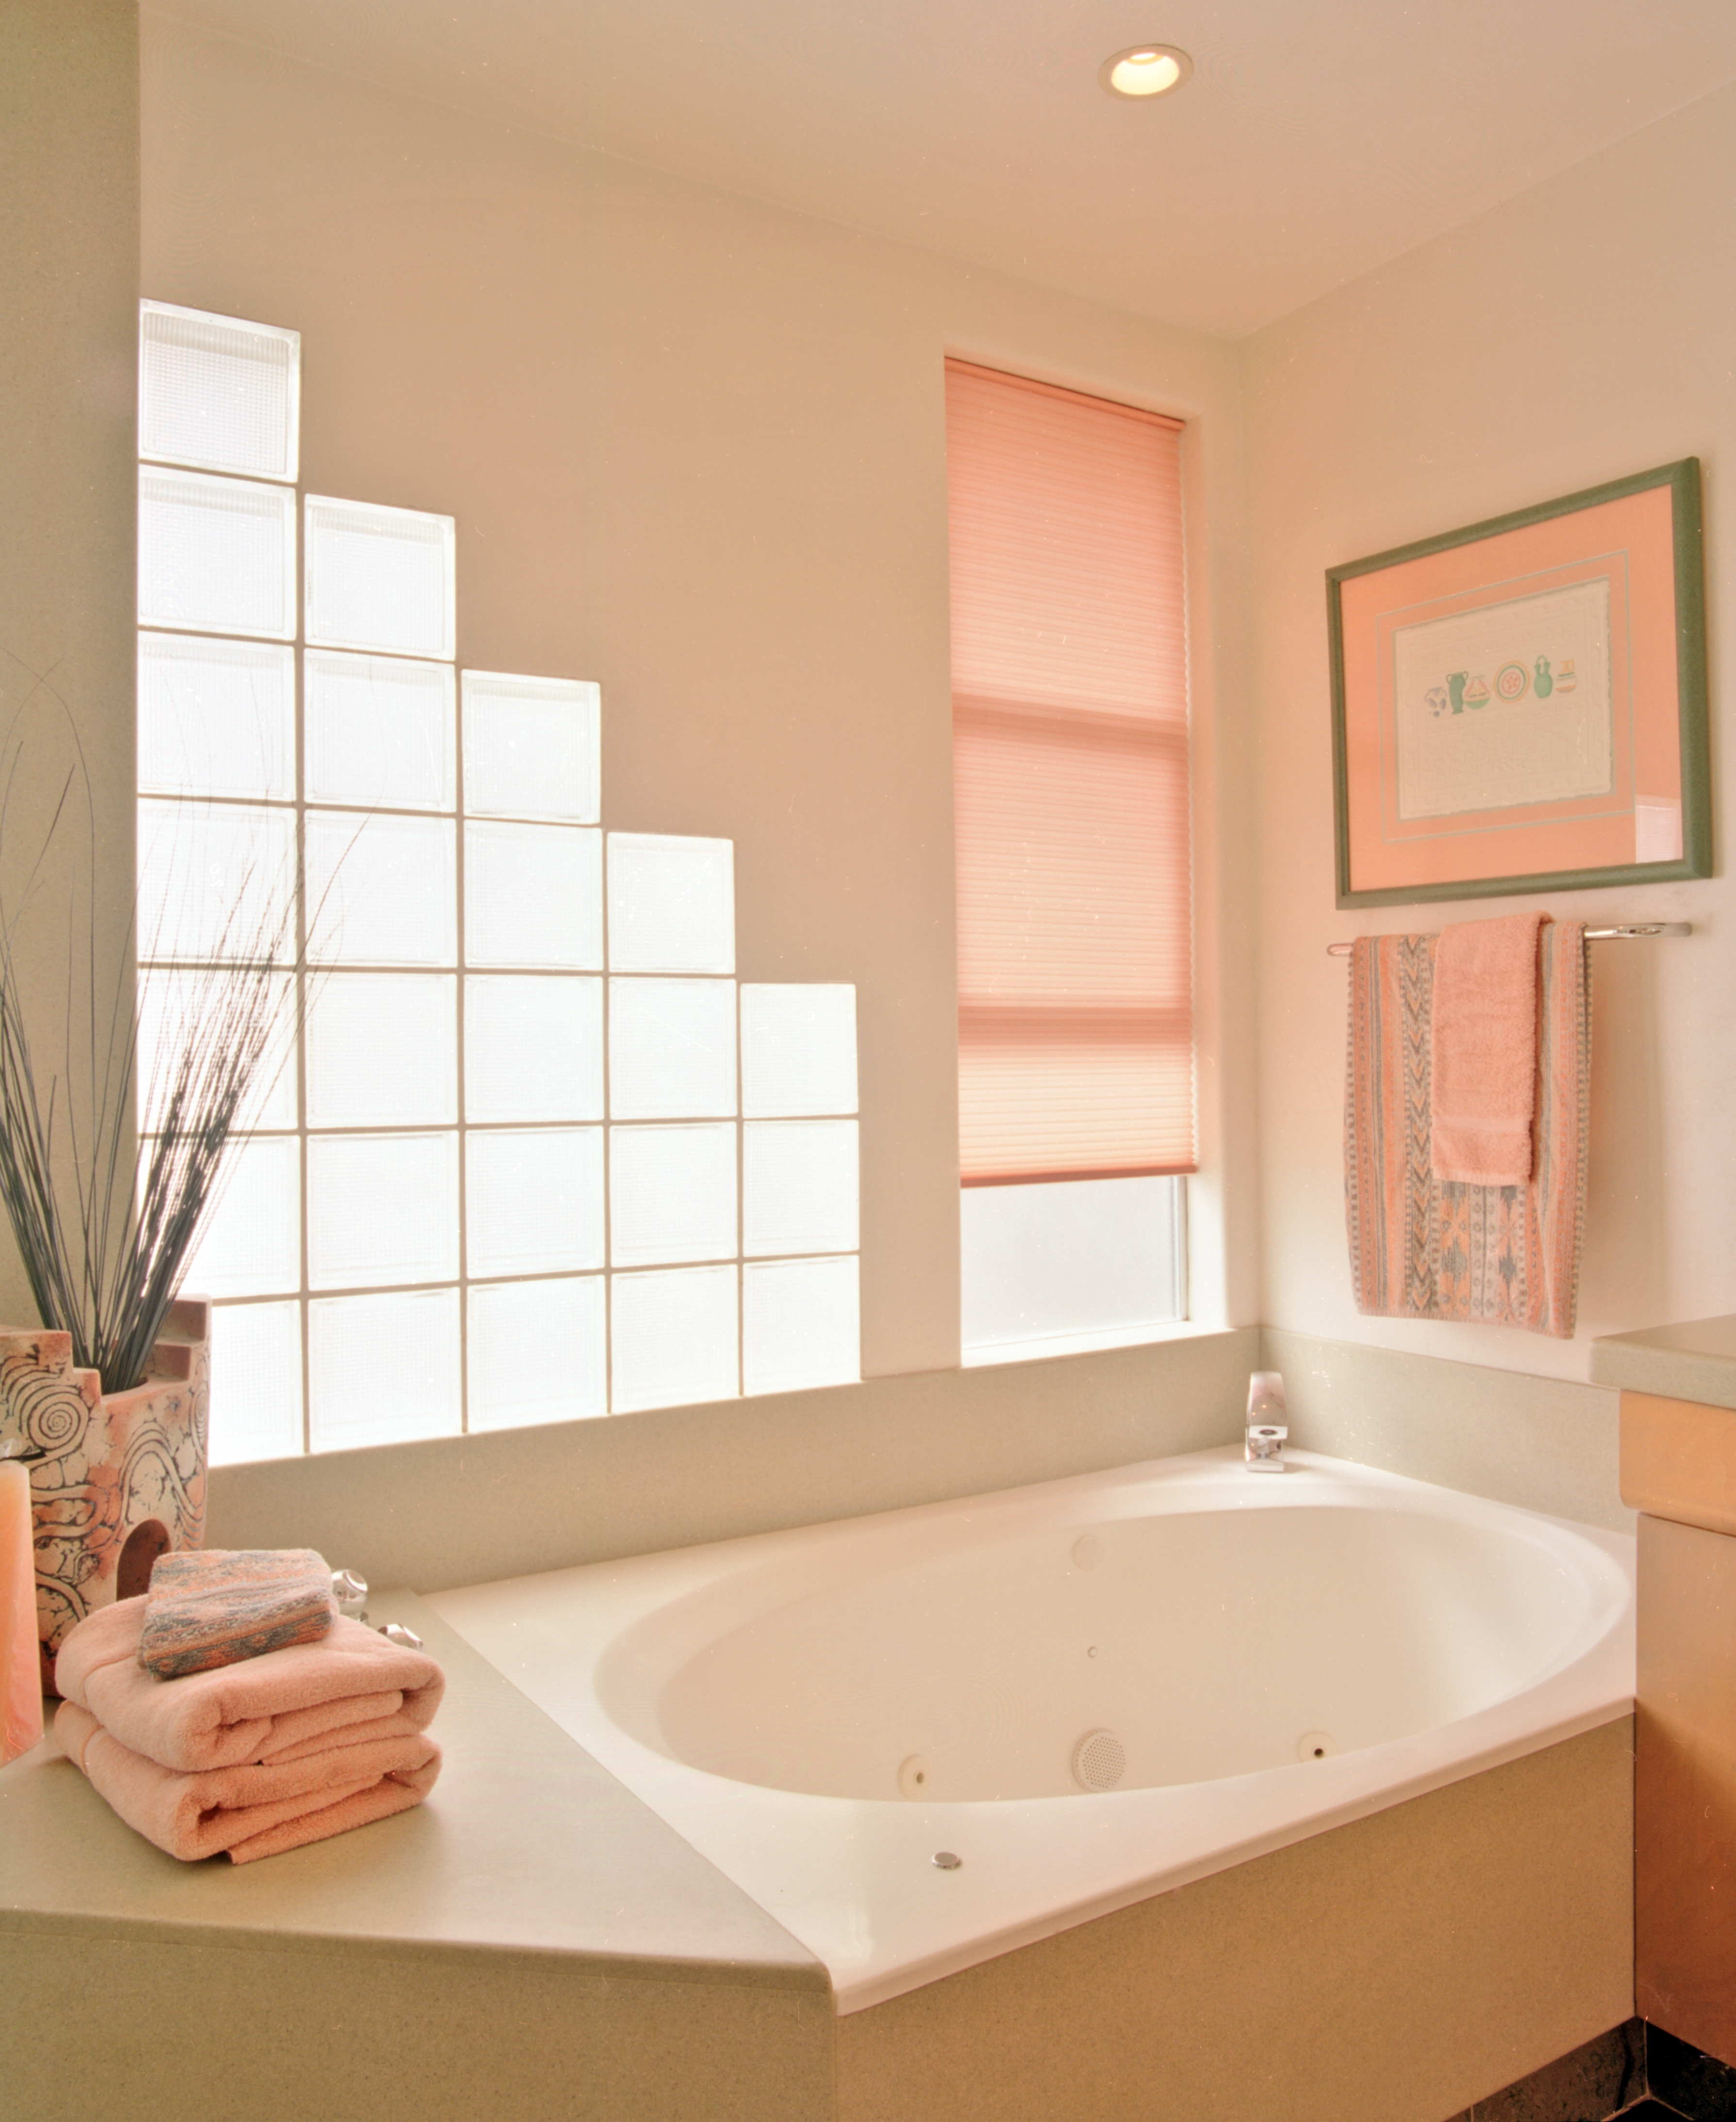 Bathroom Surround Cultured Marble Salmon LOW